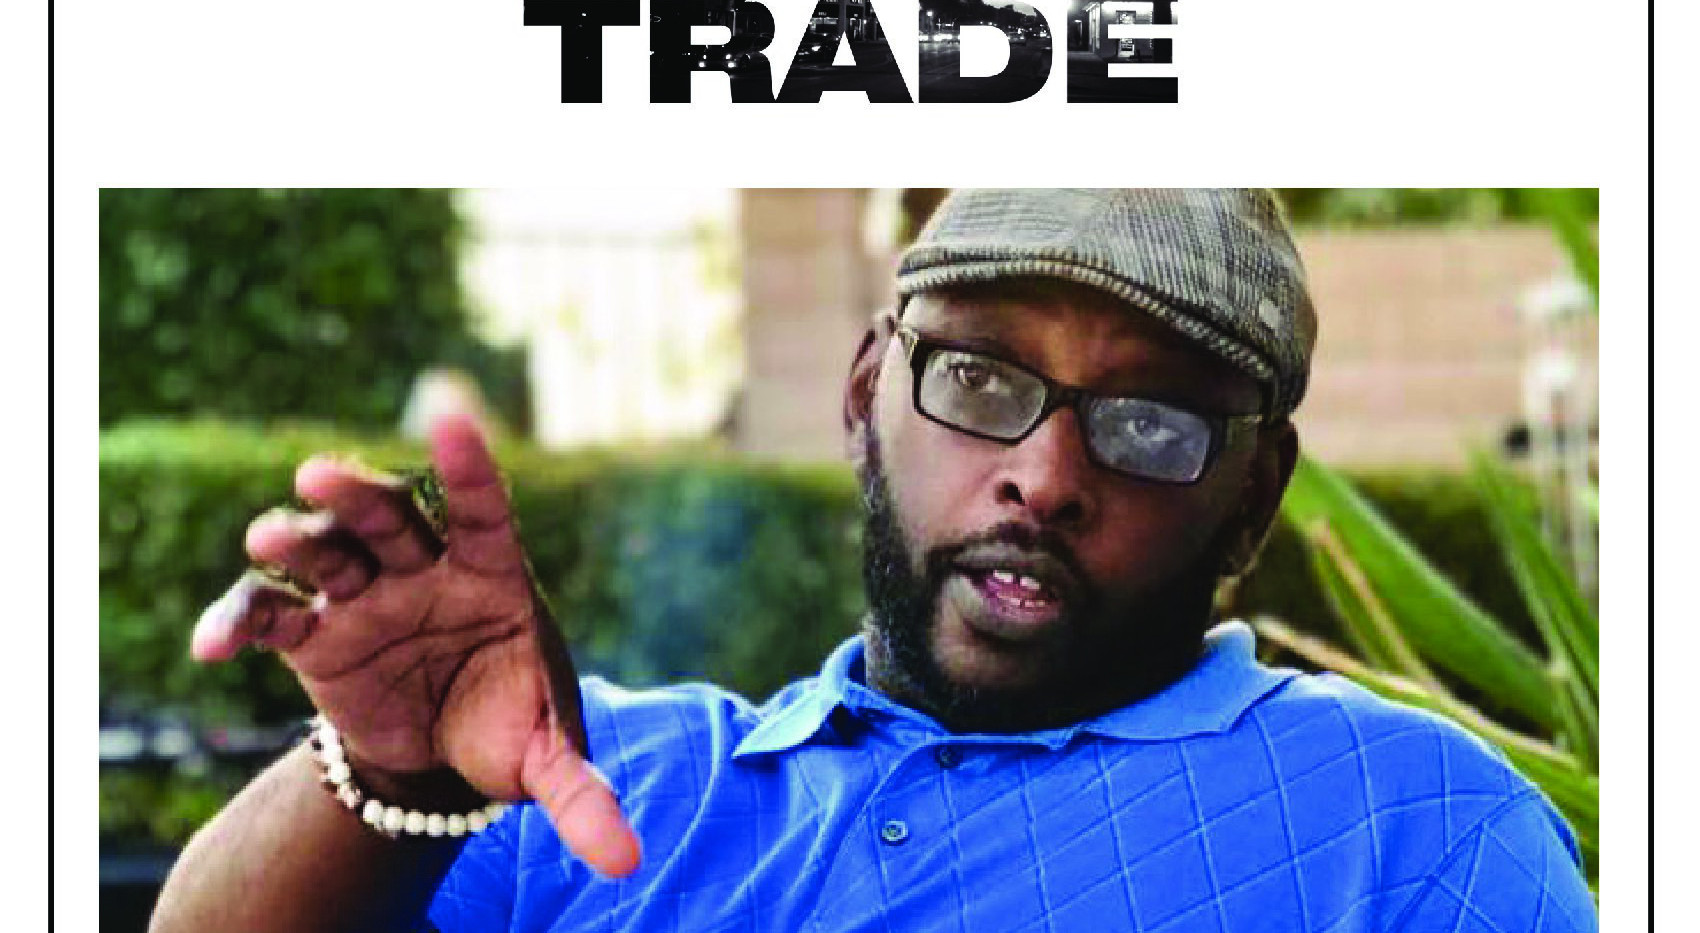 TRADE the film - TRADE Briers, Director, Executive Producer, Writer, Co-owner